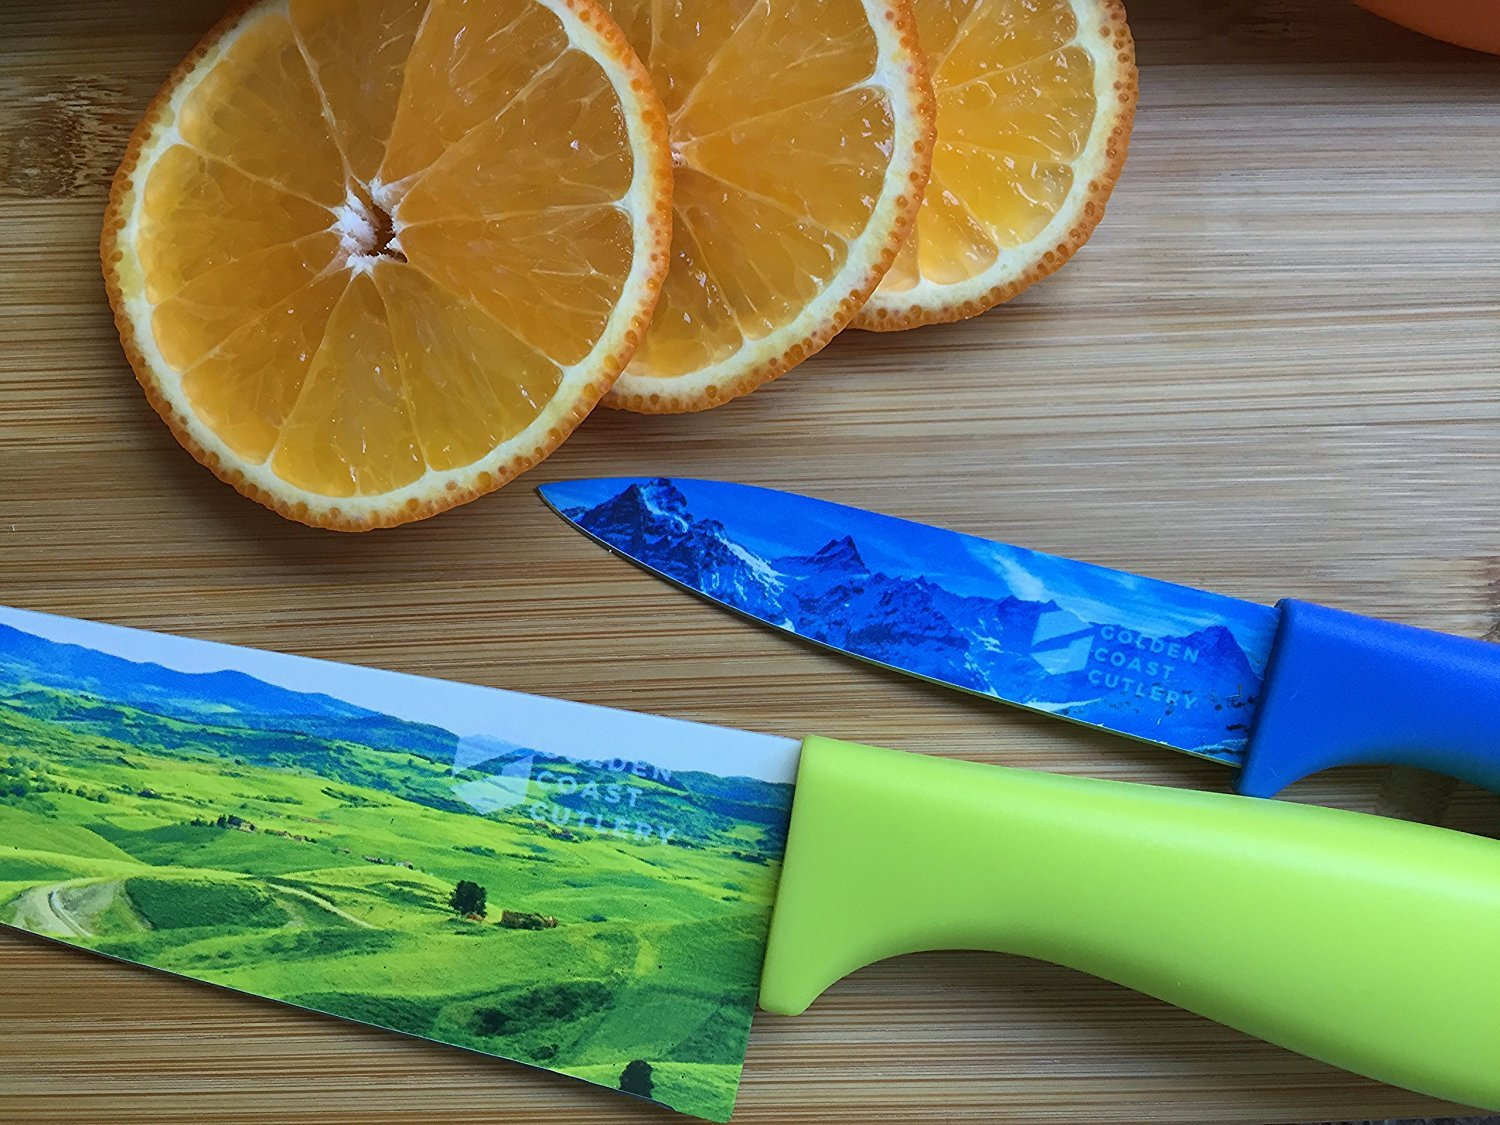 Set of 6 Landscape Kitchen Chef's Knives - Beautifully Designed Razor-Sharp Premium Gift Artisanal Cutlery Set With Non-Stick Surface Finish - By Golden Coast Cutlery by Golden Coast Cutlery (Image #9)